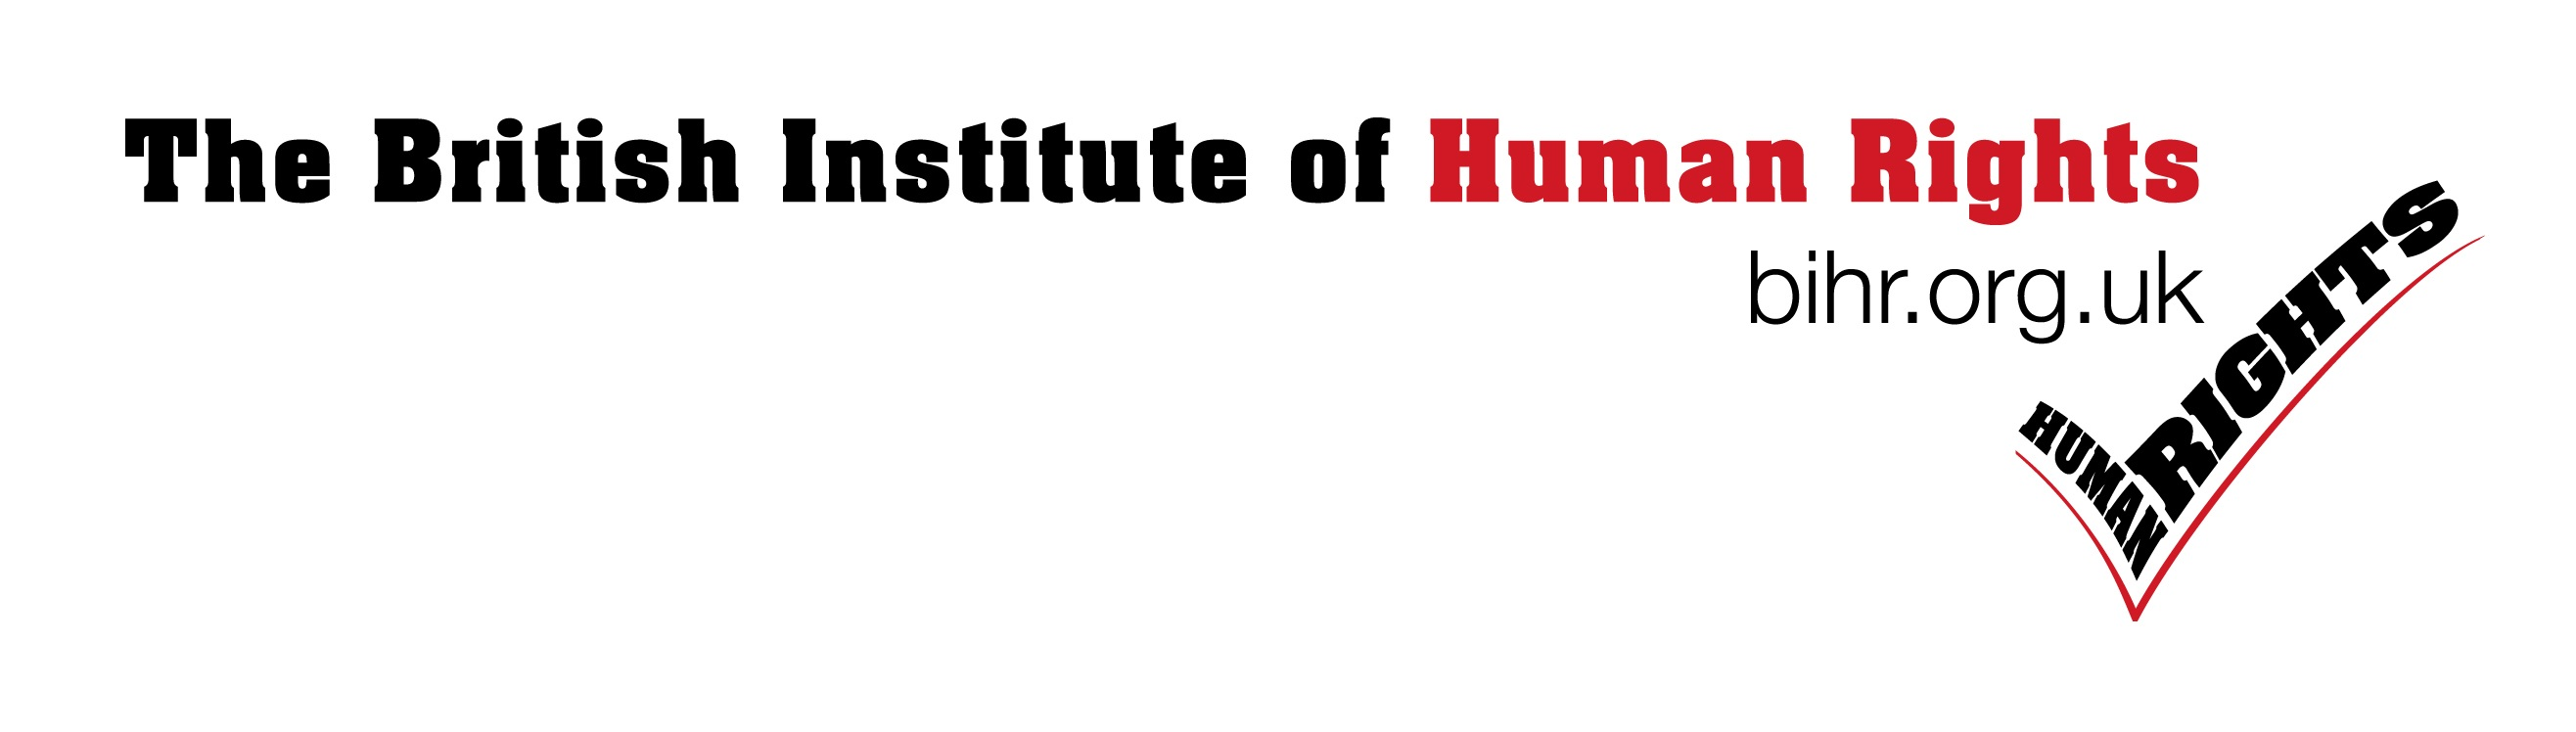 Friend of British Institute of Human Rights